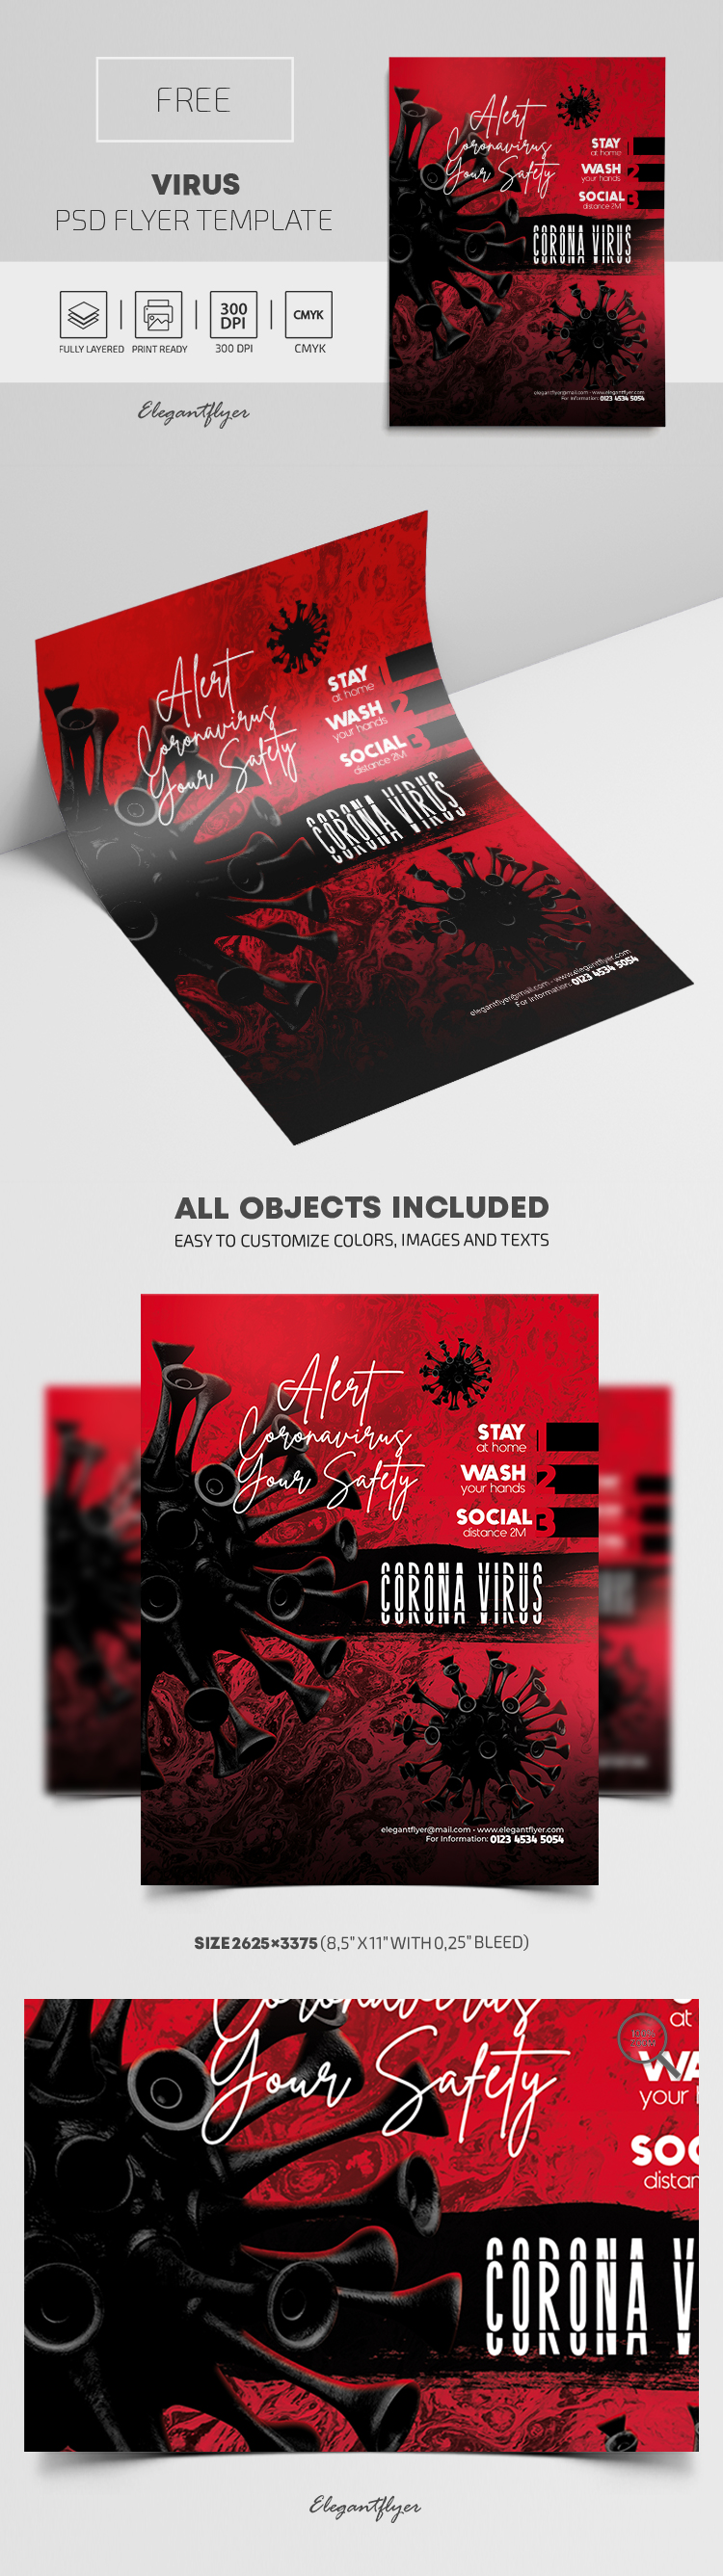 Virus – Free PSD Flyer Template